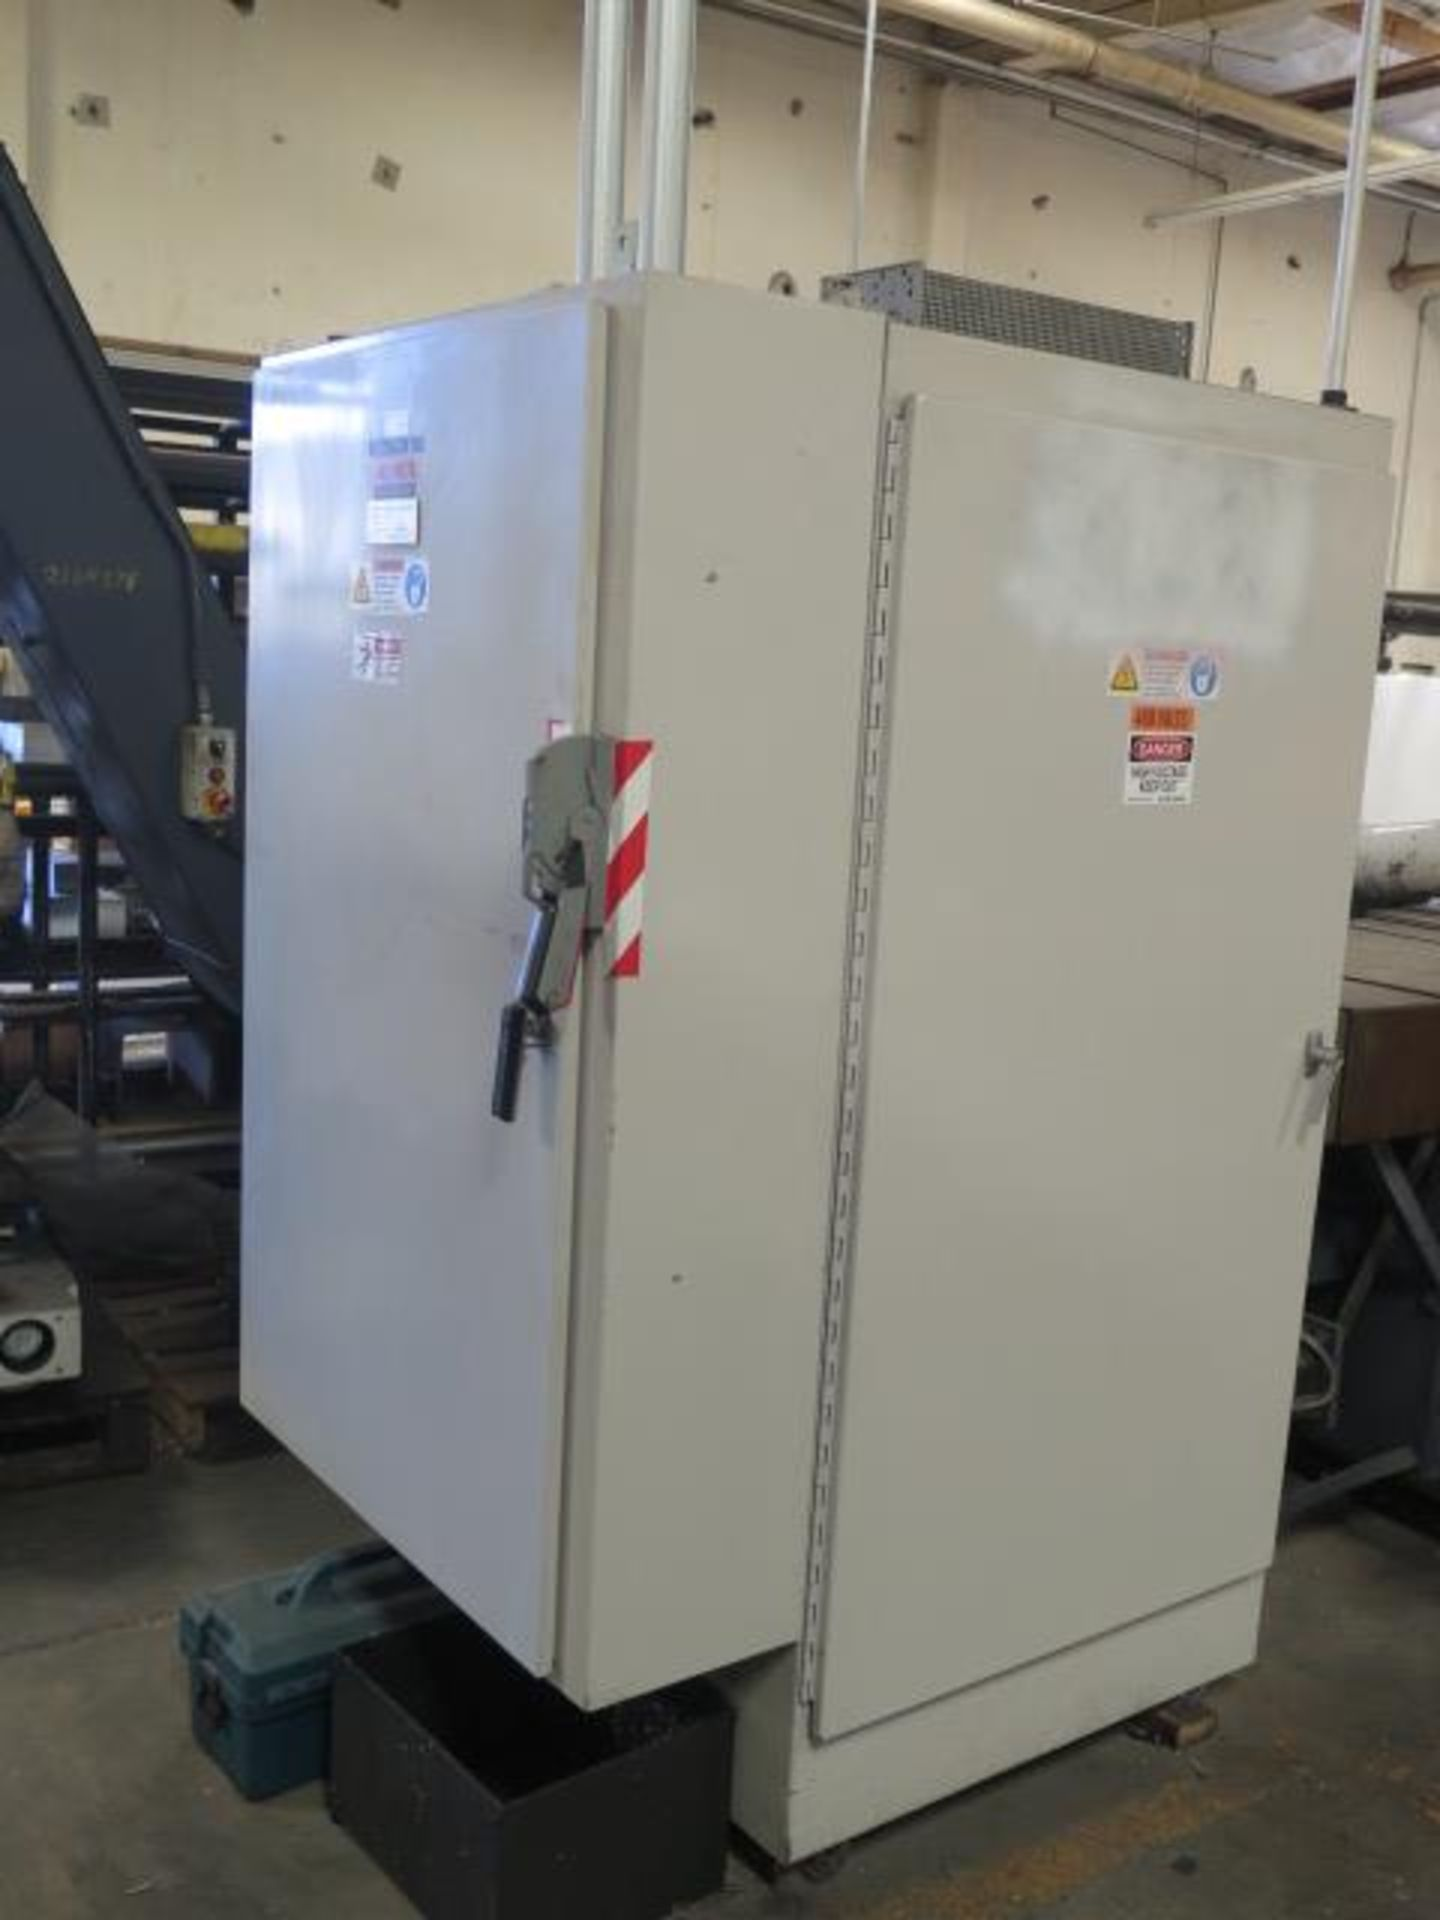 Laker-Craven-100 CNC Deep Hole Drilling Machine s/n 1241 w/ Fanuc Power MATE Controls, SOLD AS IS - Image 17 of 41